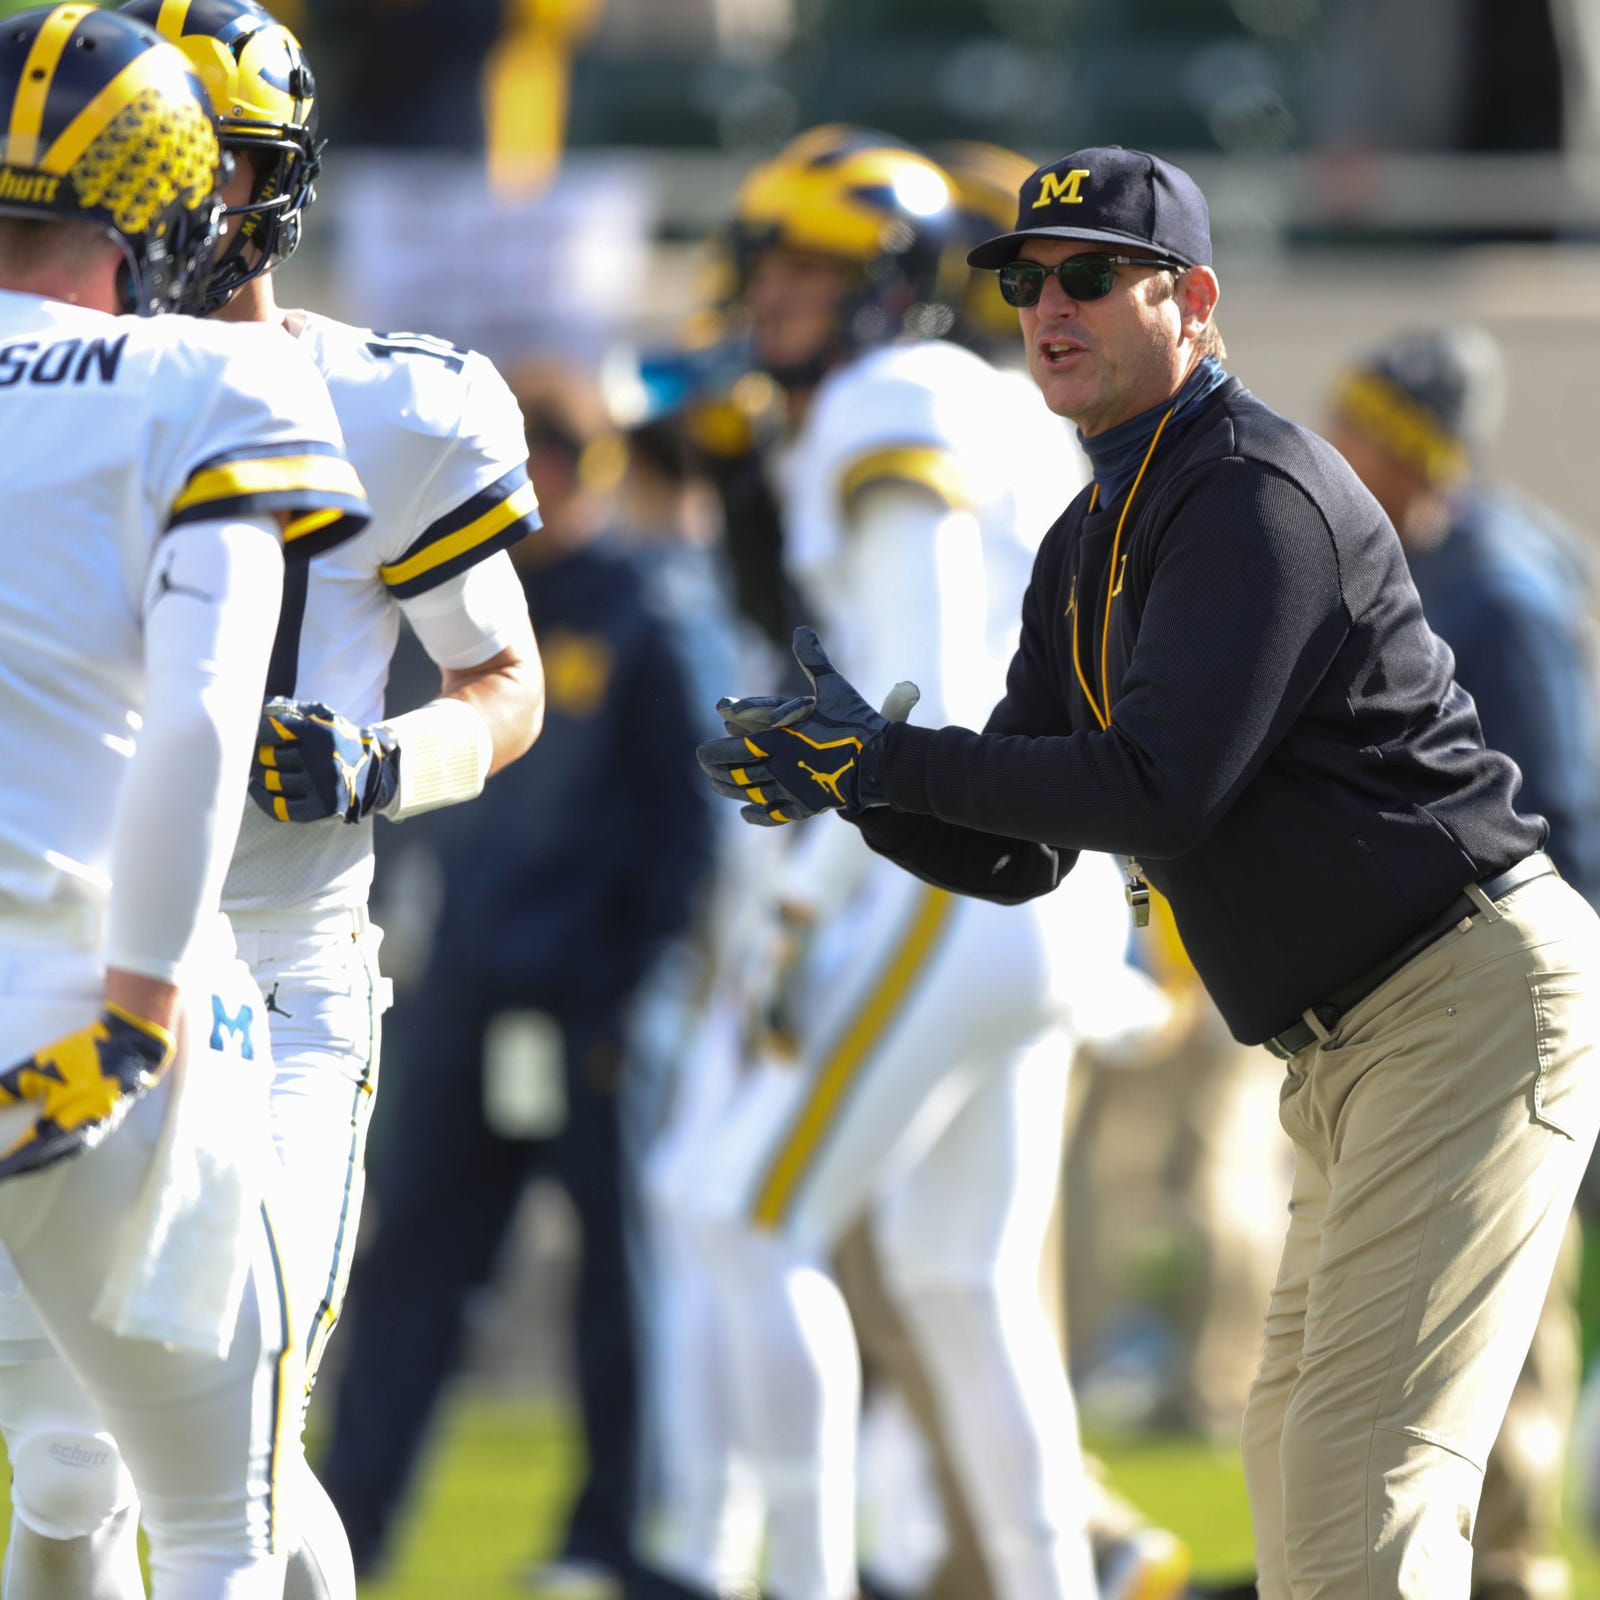 What does Michigan football's win over MSU mean for Jim Harbaugh?